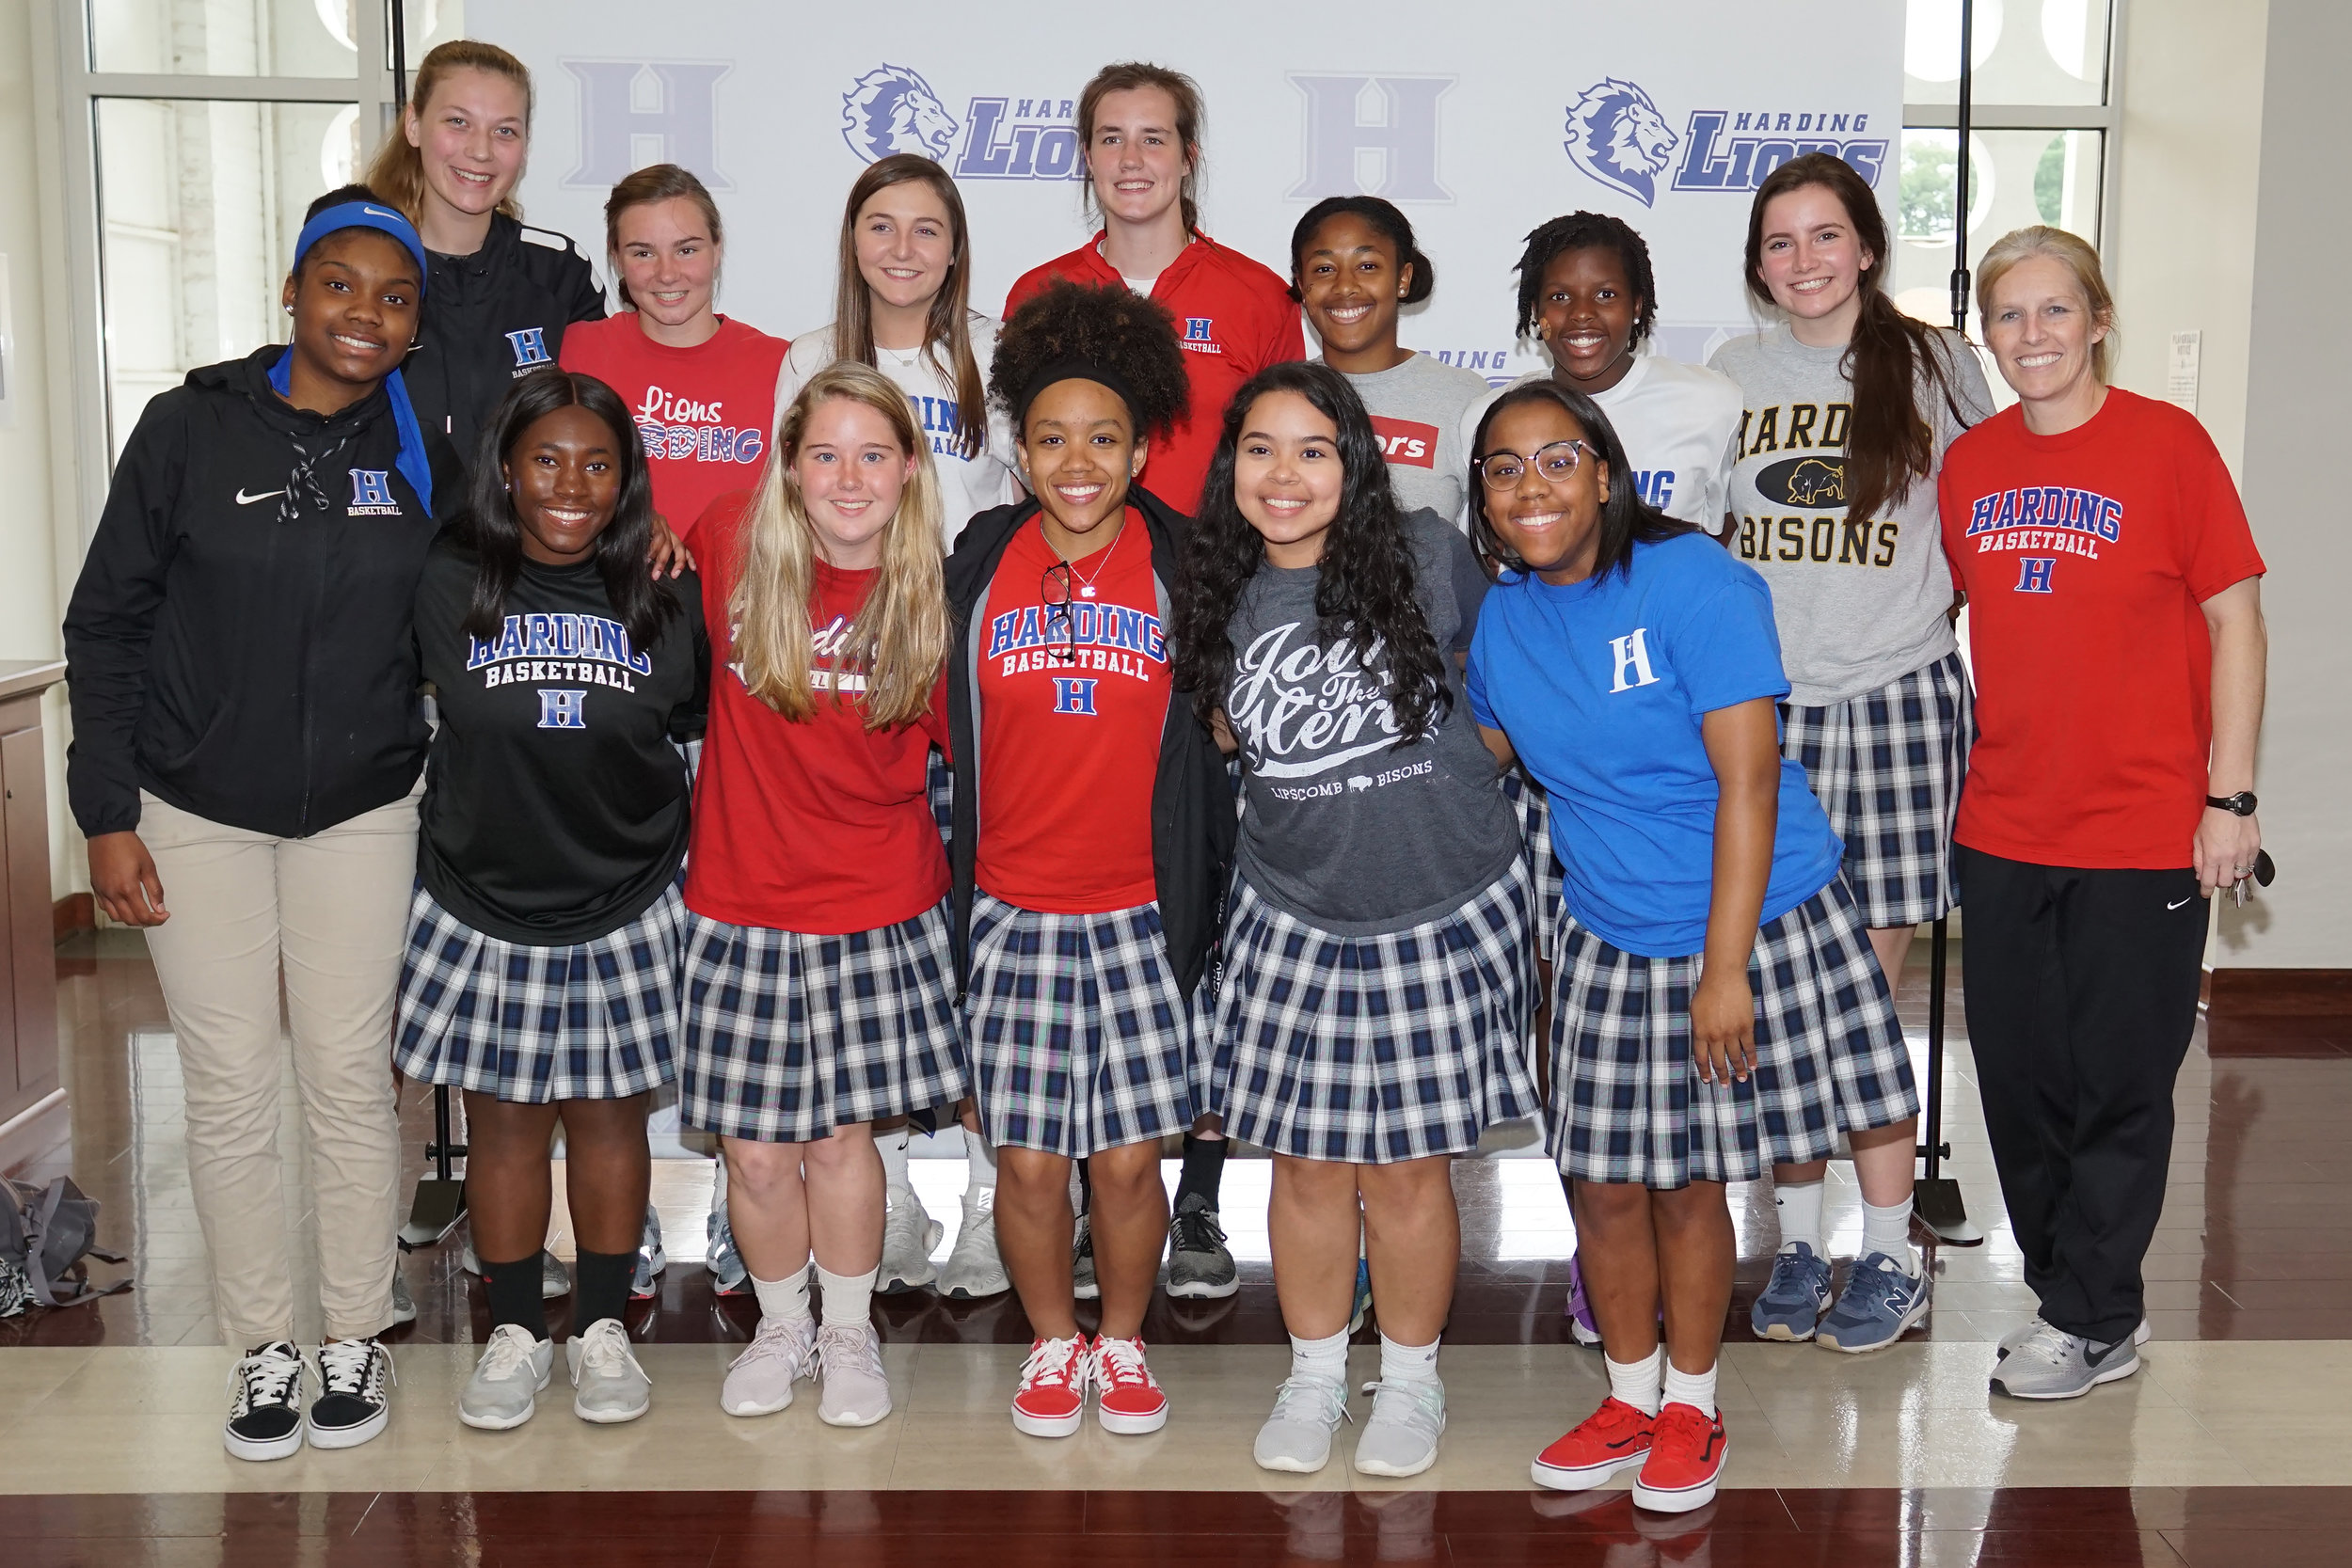 Coach of the Year: Becky Starks Team of the Year: Varsity Girls Basketball